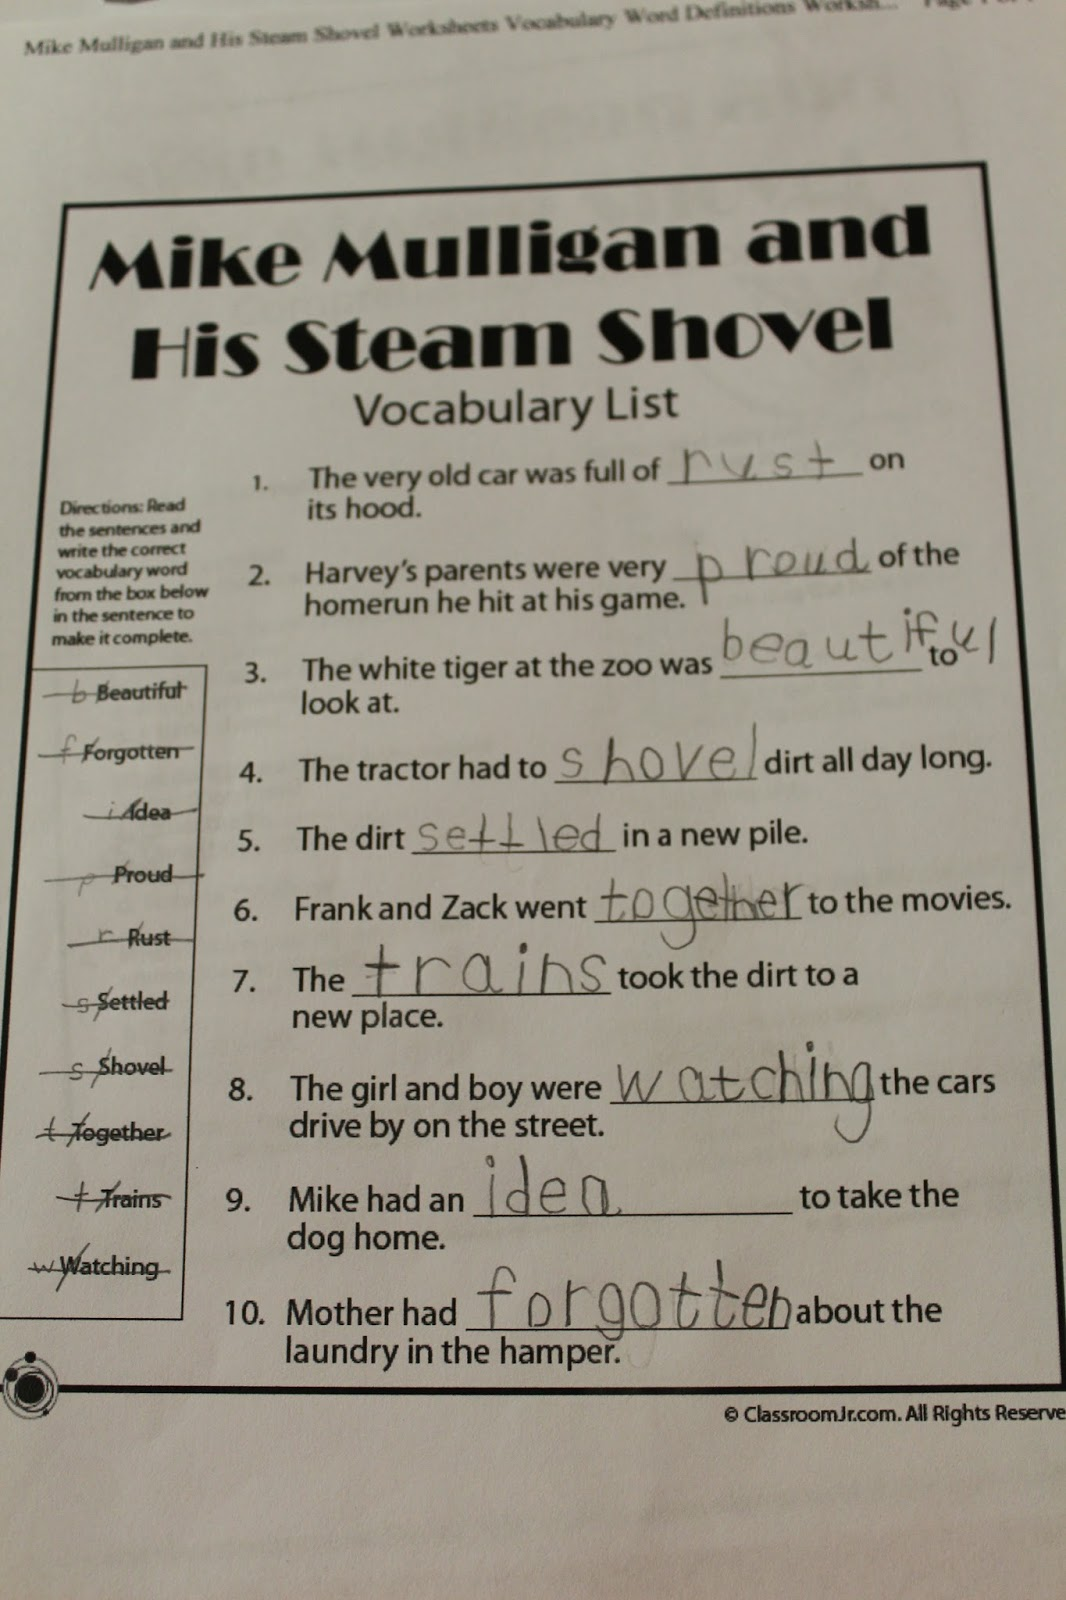 Worksheets What Do You Call A Duck That Steals Worksheet Answers spark and all mike mulligan his steam shovel